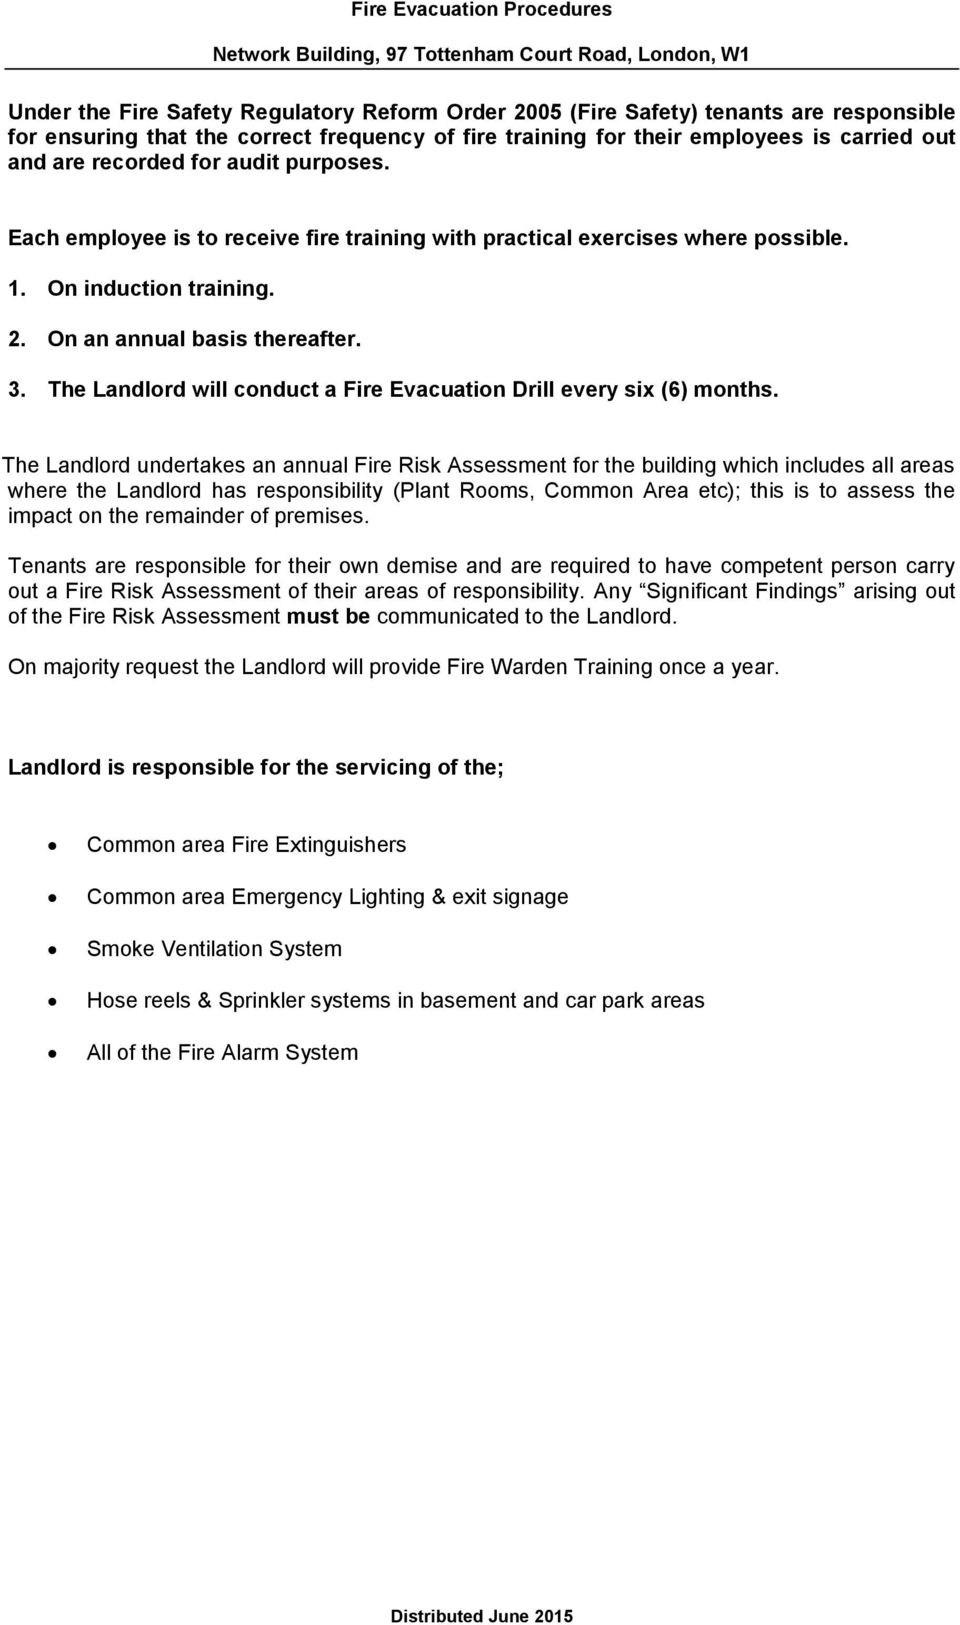 The Landlord will conduct a Fire Evacuation Drill every six (6) months.